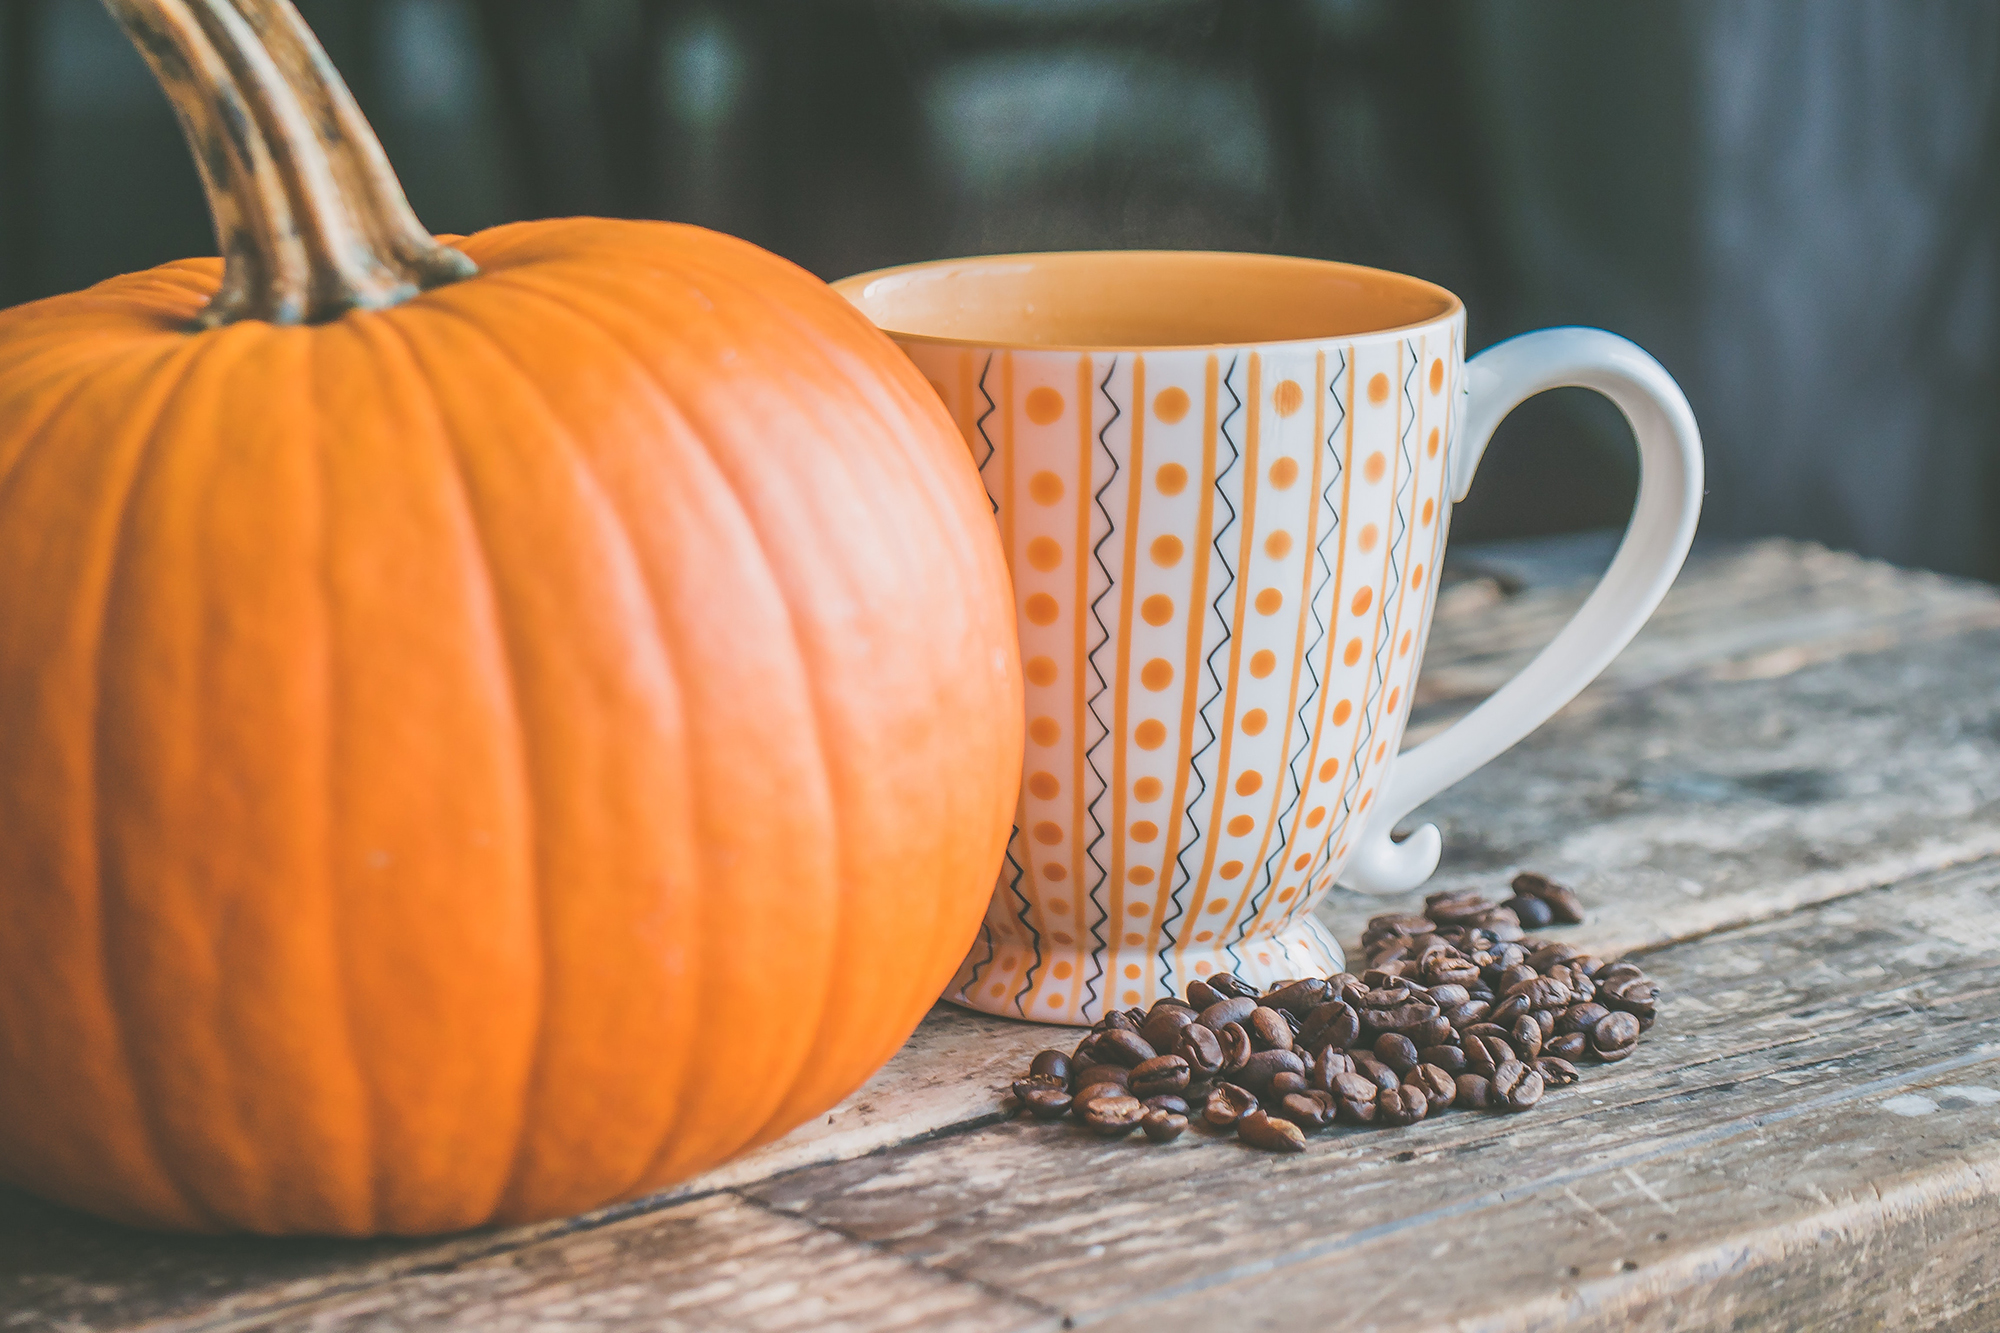 Pumpkin Spice Season: Beneficial or #Basic?